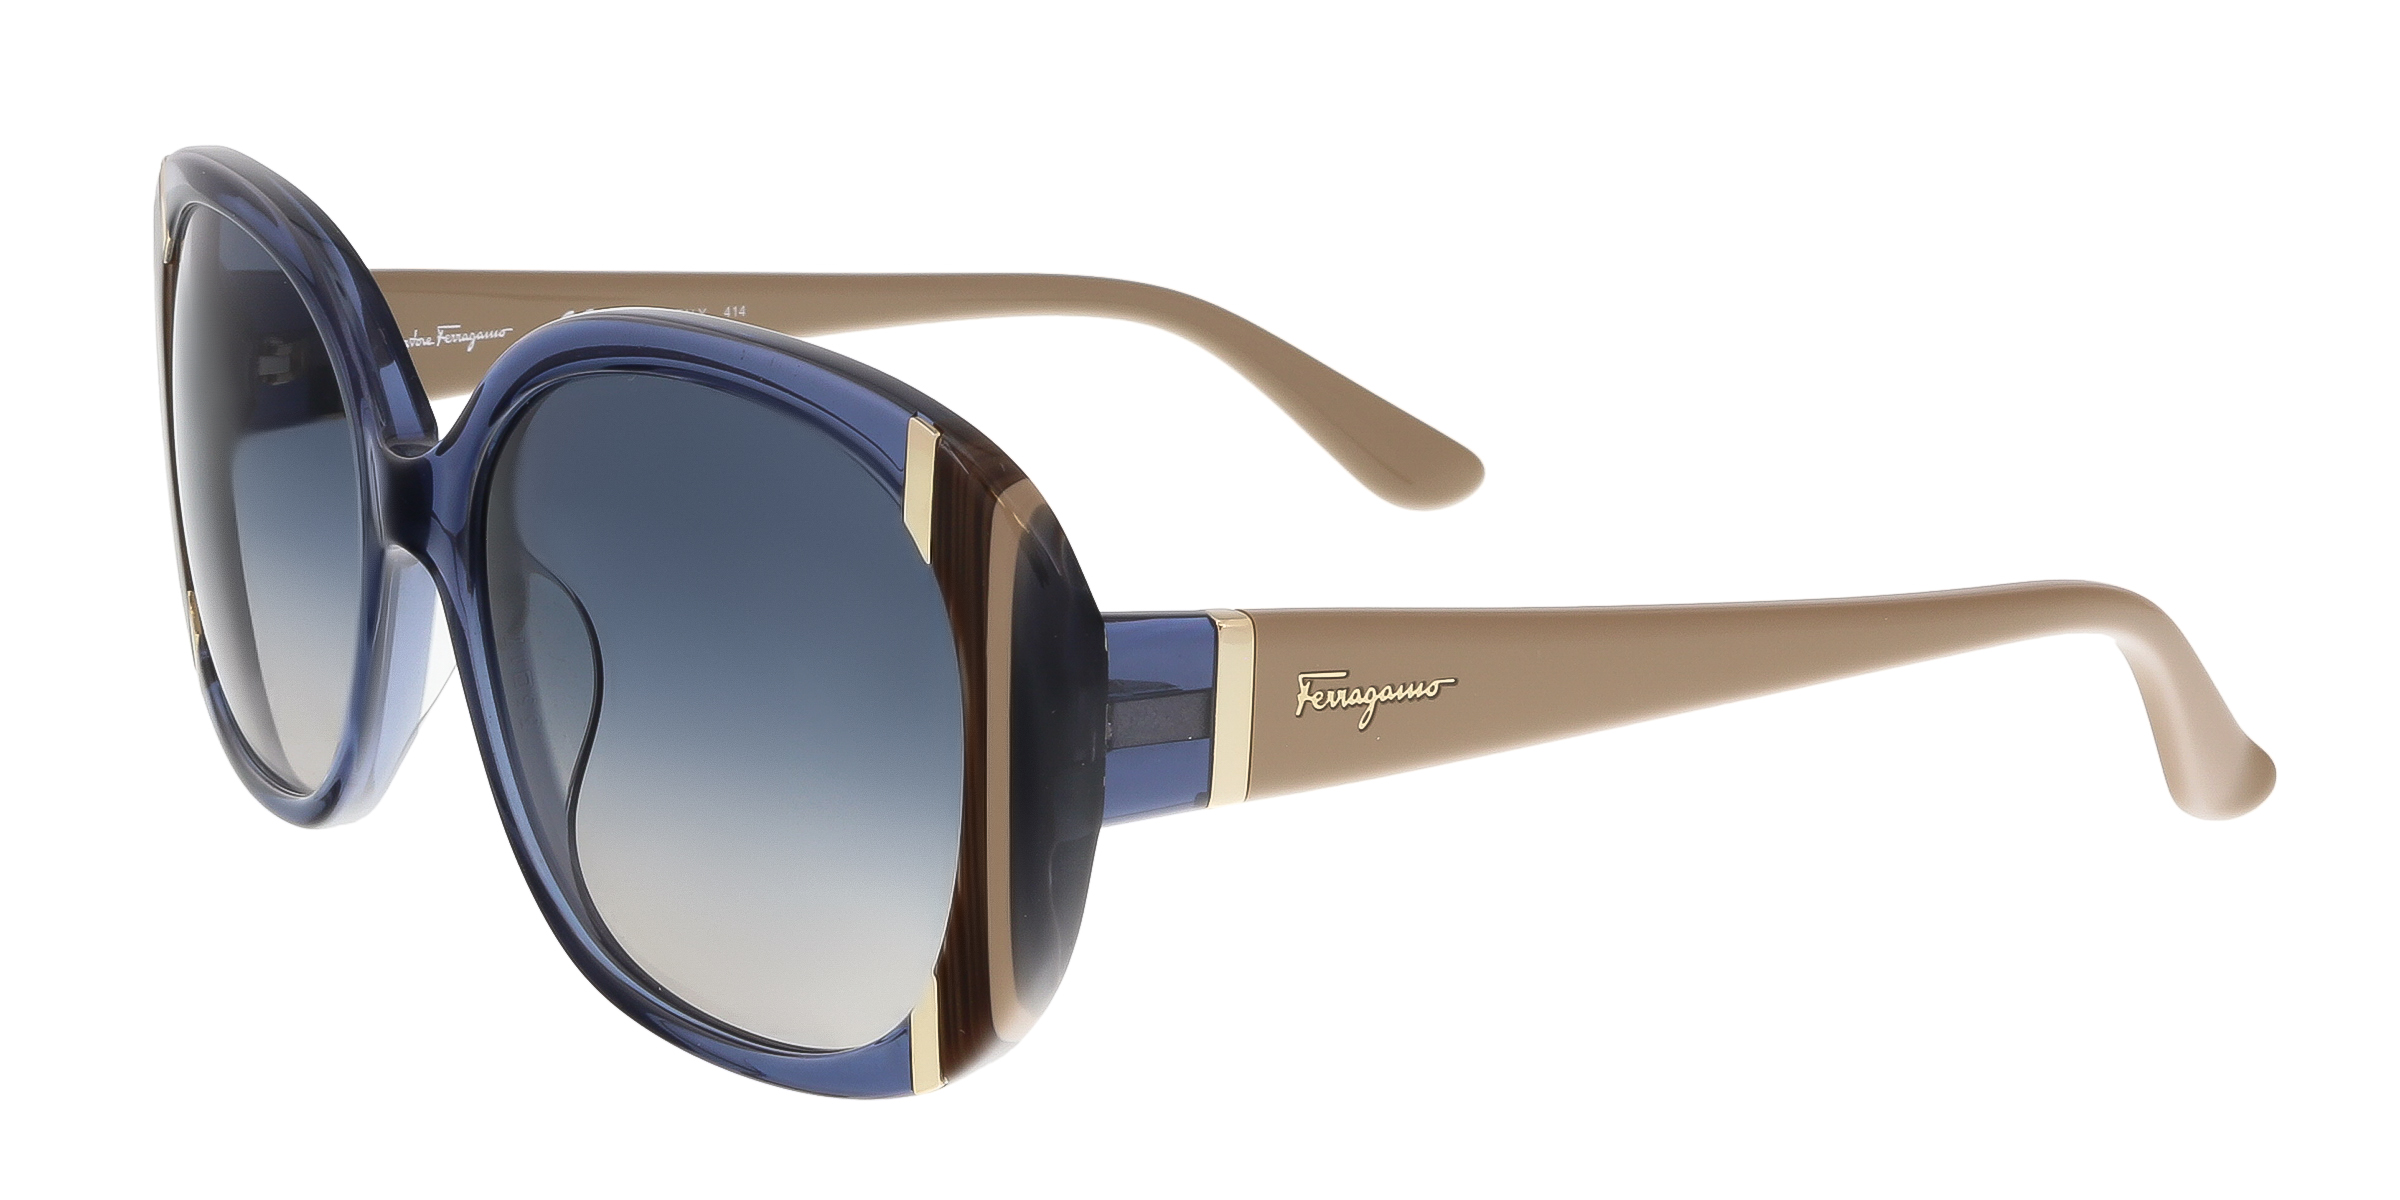 Salvatore Ferragamo SF674/S 424 Blue Oval Feline Sunglasses